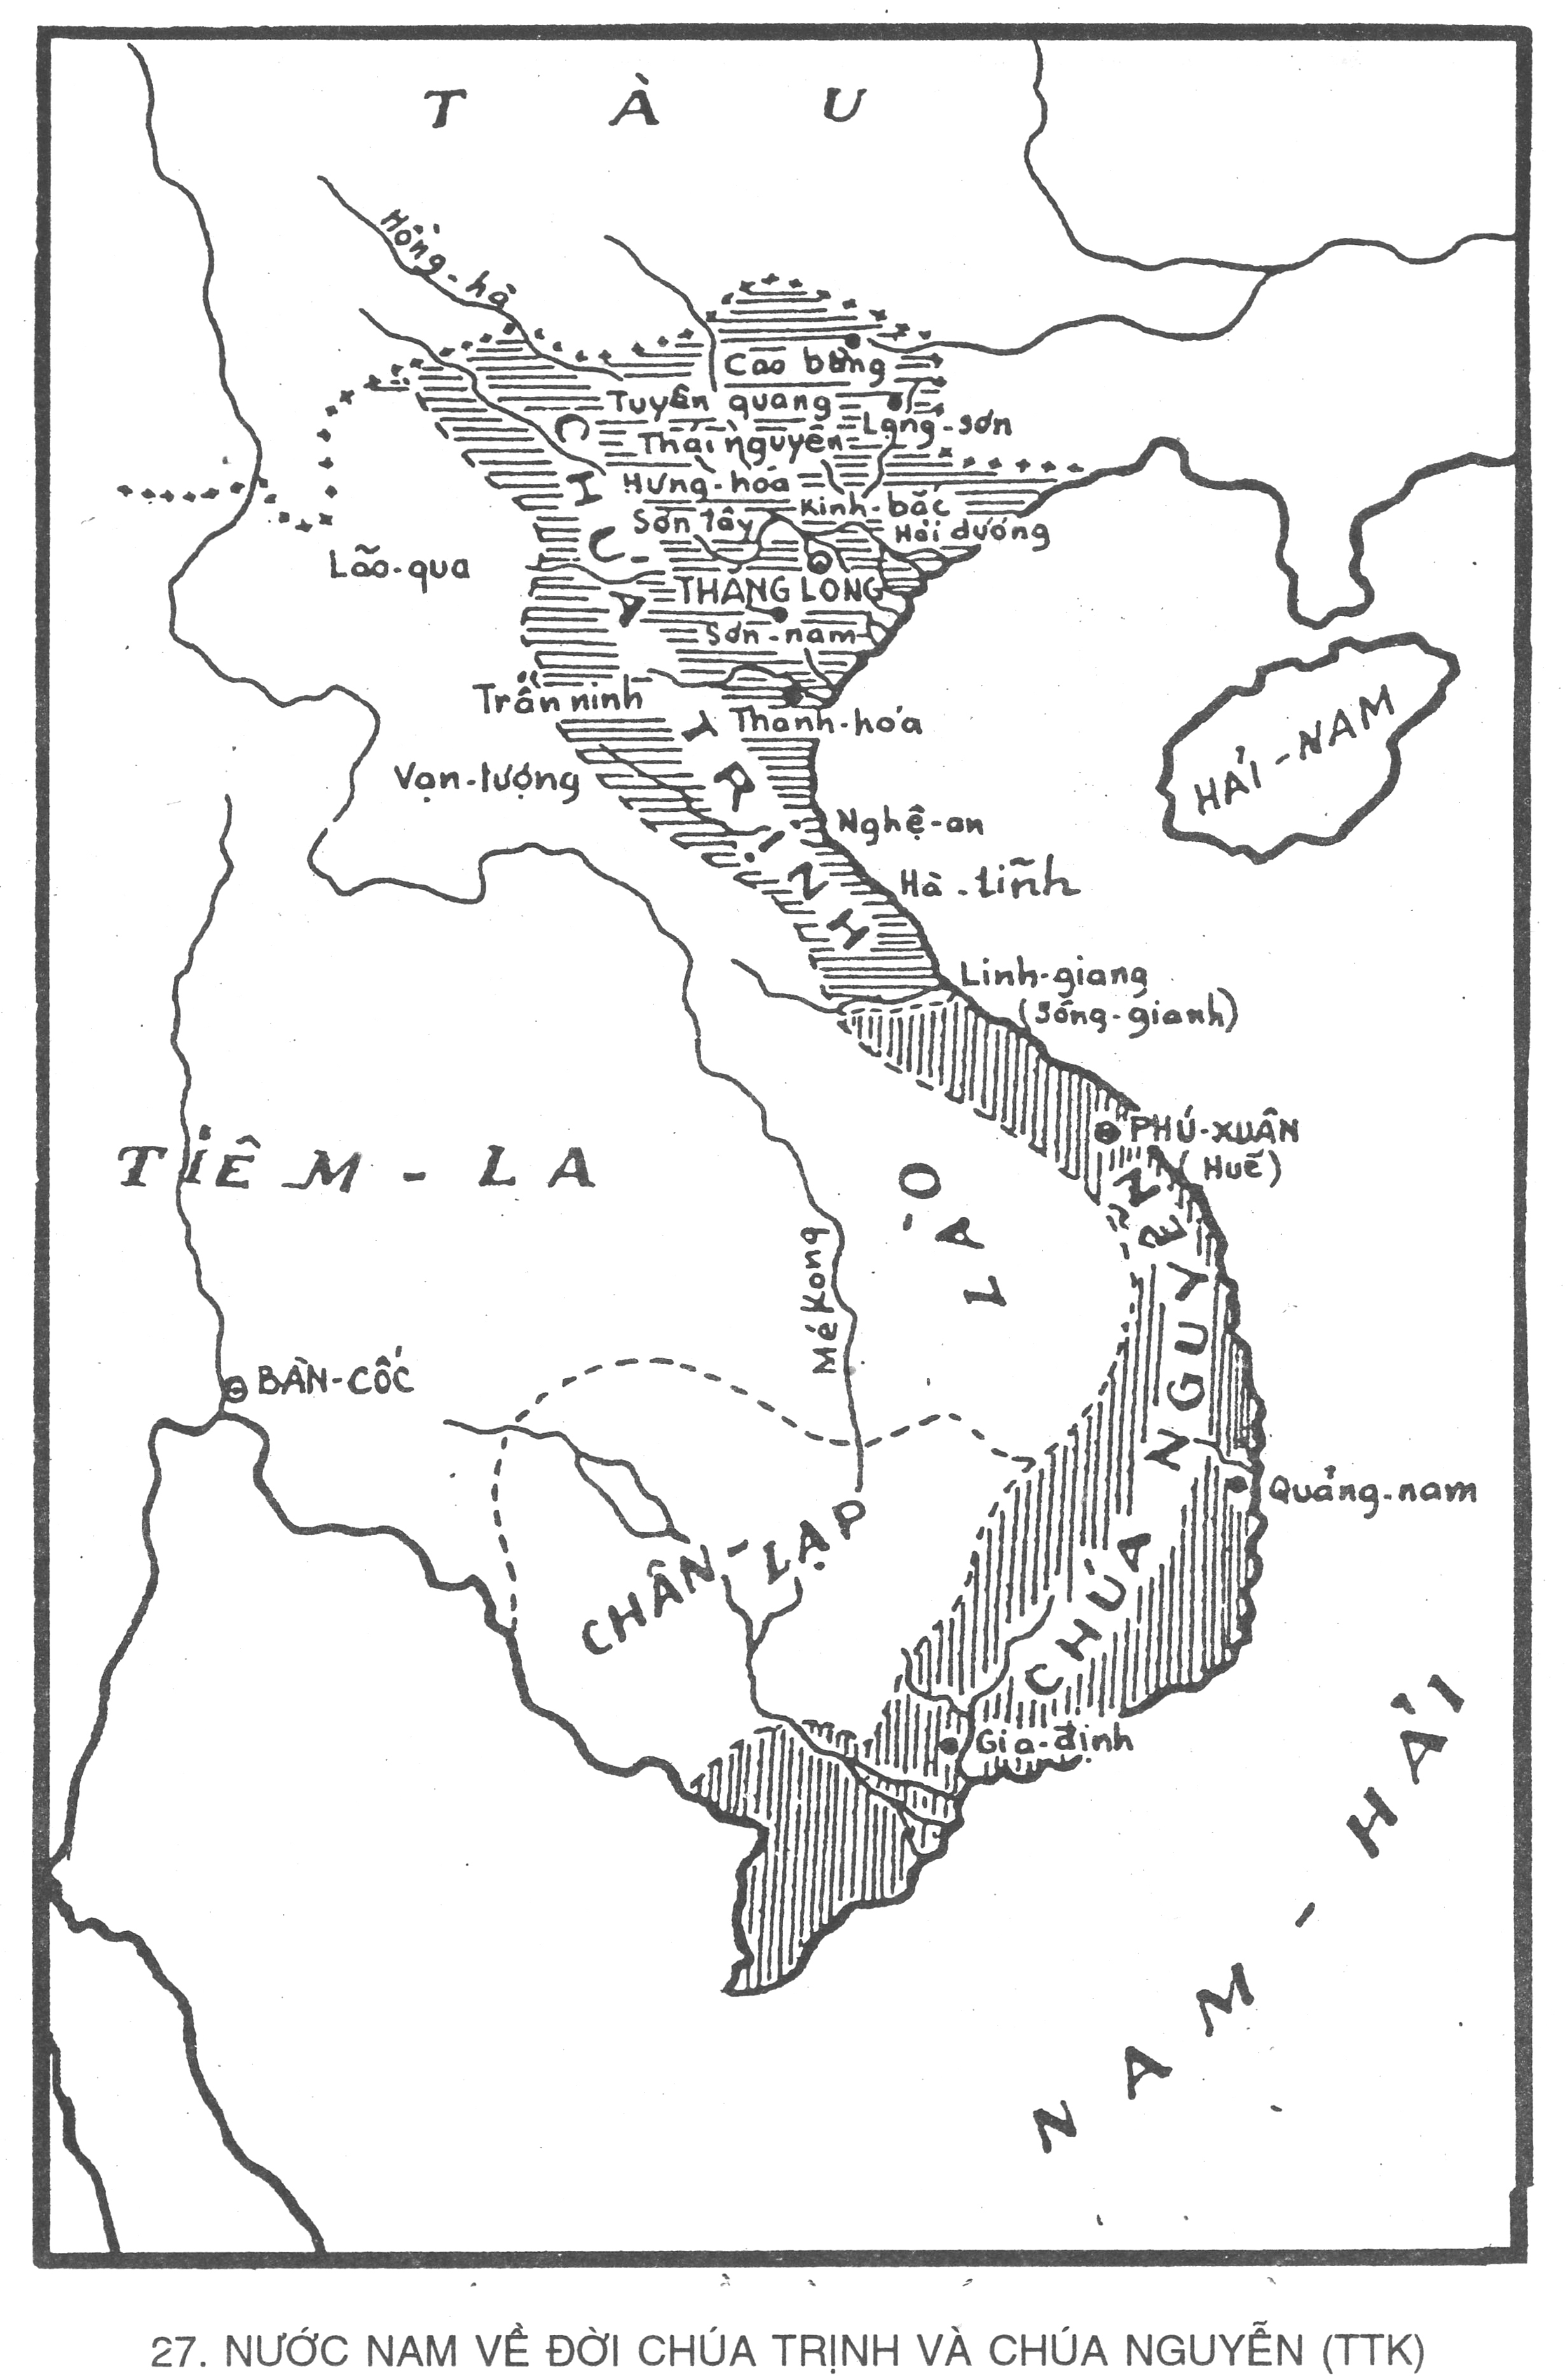 about viet nam With peter coyote, huy duc, duong van mai elliott, karl marlantes a comprehensive history of the united states' involvement in the bitterly divisive armed conflict in southeast asia.